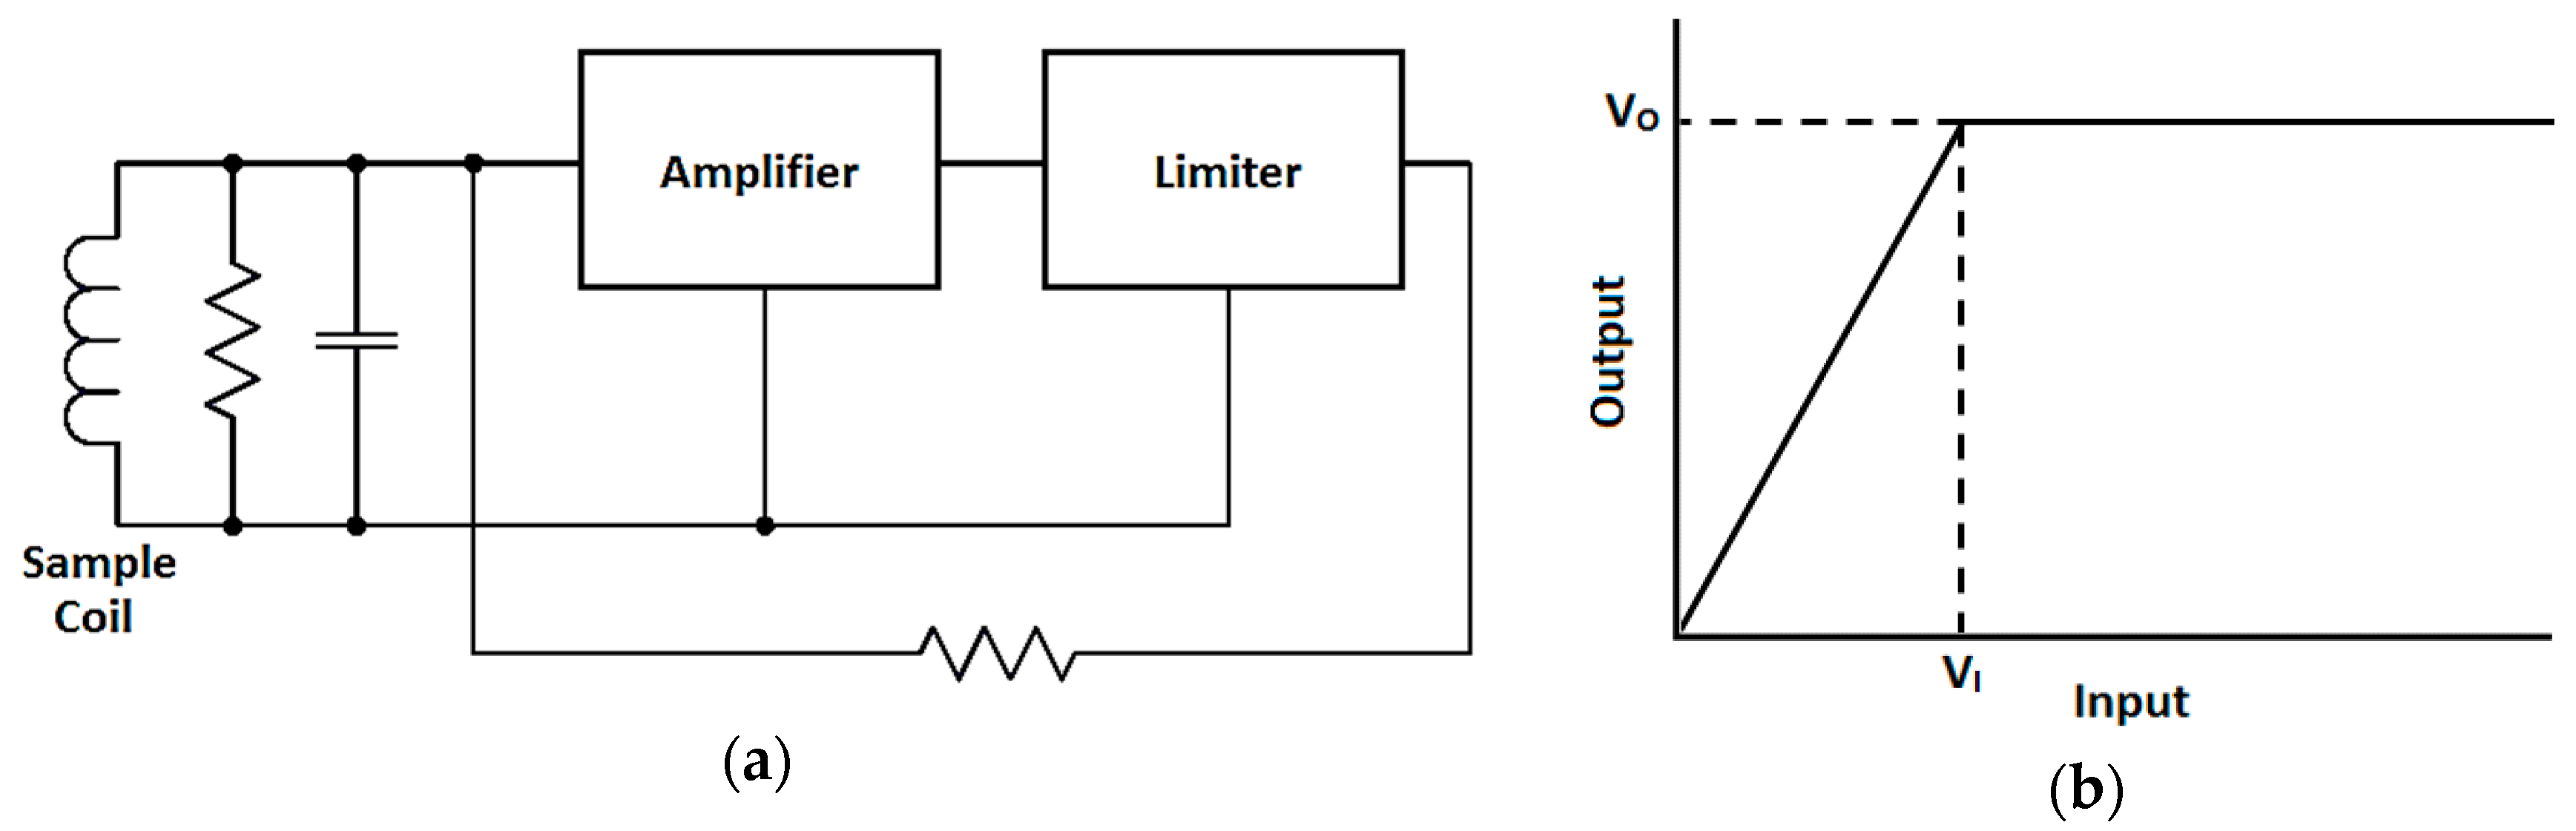 Electronics Free Full Text Advances In Prompt A Inductive Proximity Sensor Comprising Resonant Oscillatory Circuit 06 00089 G009